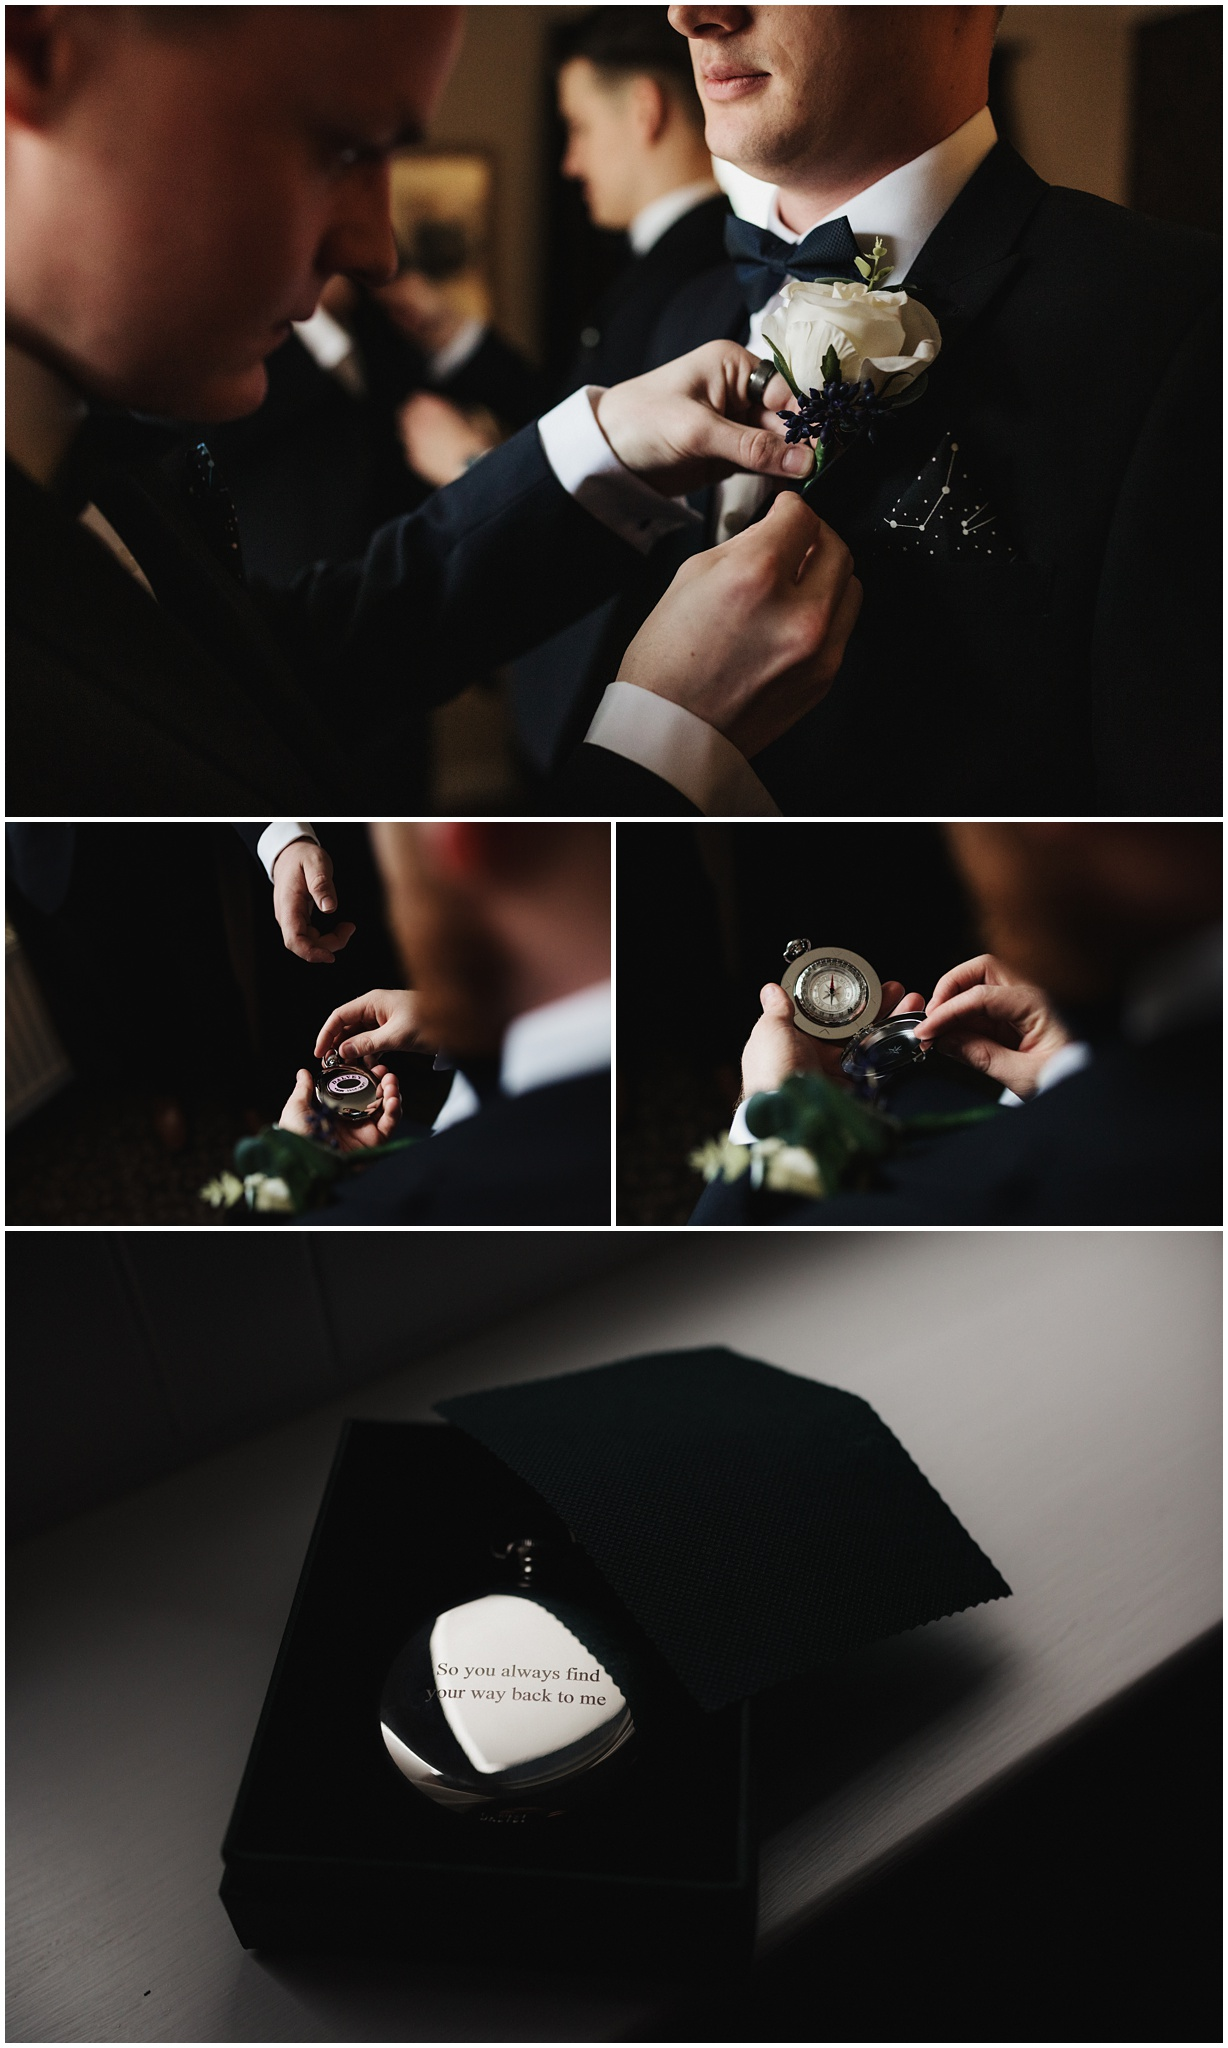 The groomsmen attach the button holes and the groom receives a compass as a gift